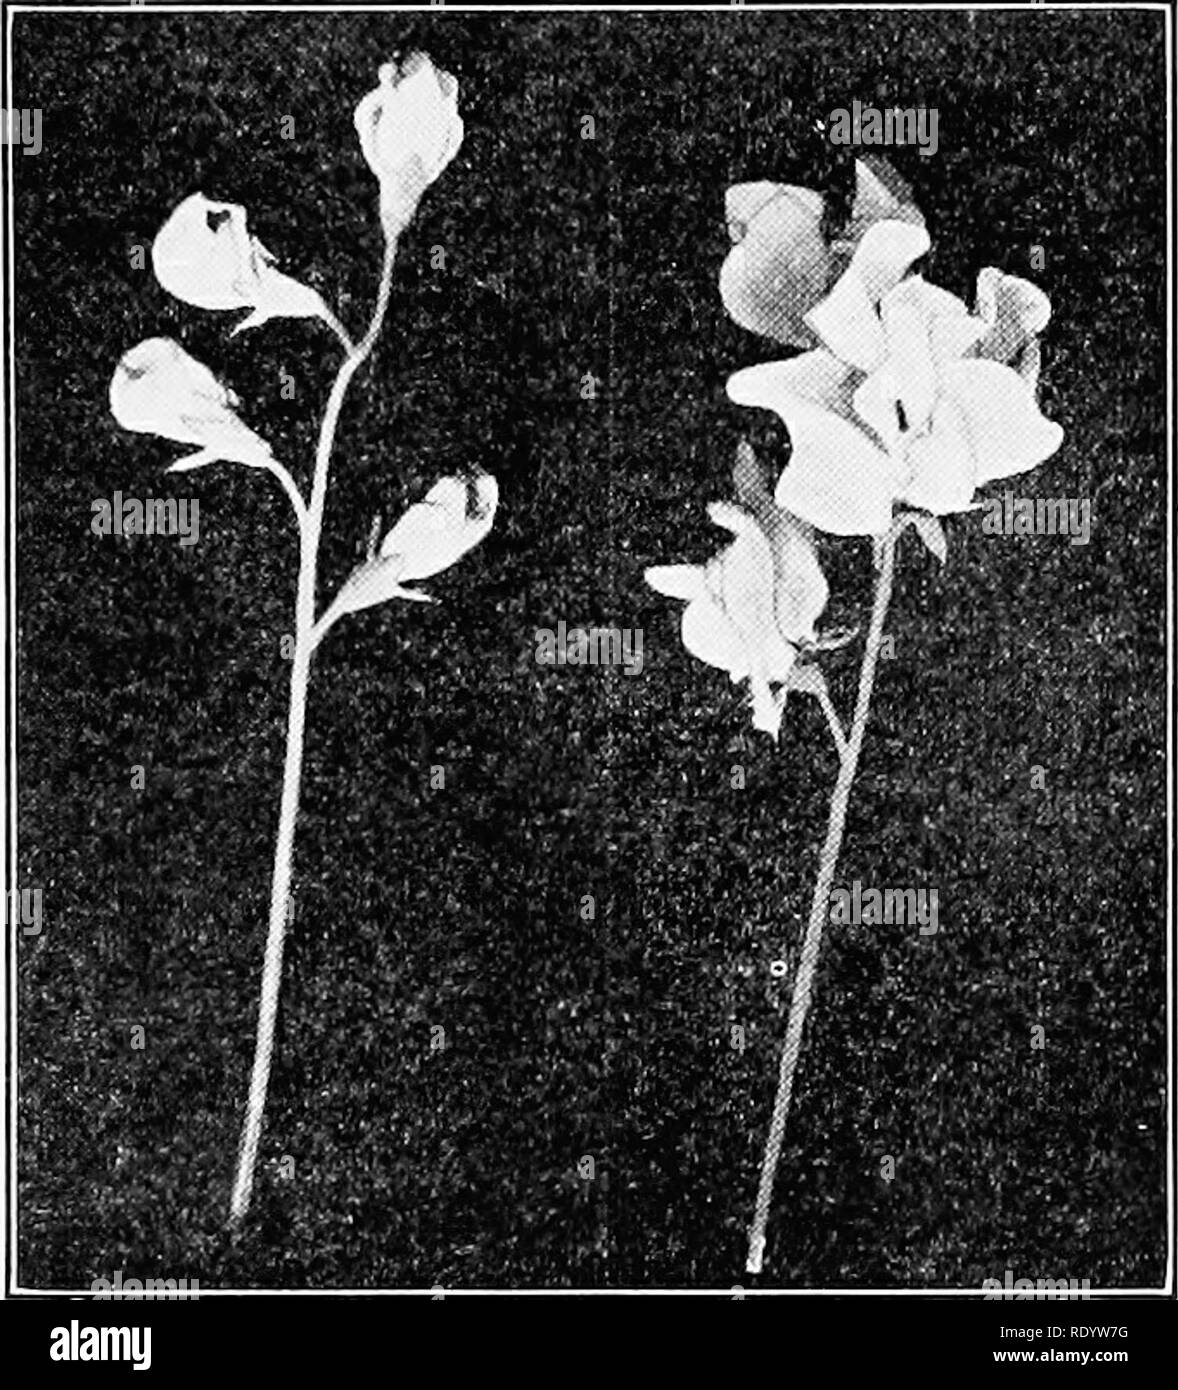 . Genetics in relation to agriculture. Livestock; Heredity; Variation (Biology); Plant breeding. ON VARIETIES IN PLANTS 307 sitions in their day and were doubtless considerably larger than the oldest varieties. The first definite reference to size is found in New Large Purple, listed in 1845. As this occurs in the darkest color group and 15 years before the hj^brid origin of a new variety, Blue Edged, was even suggested, it probably represents a factor mutation. That such mutations actually occurred in the sweet pea is proved by the fact that Countess Spencer and Gladys Unwin were both decided - Stock Image